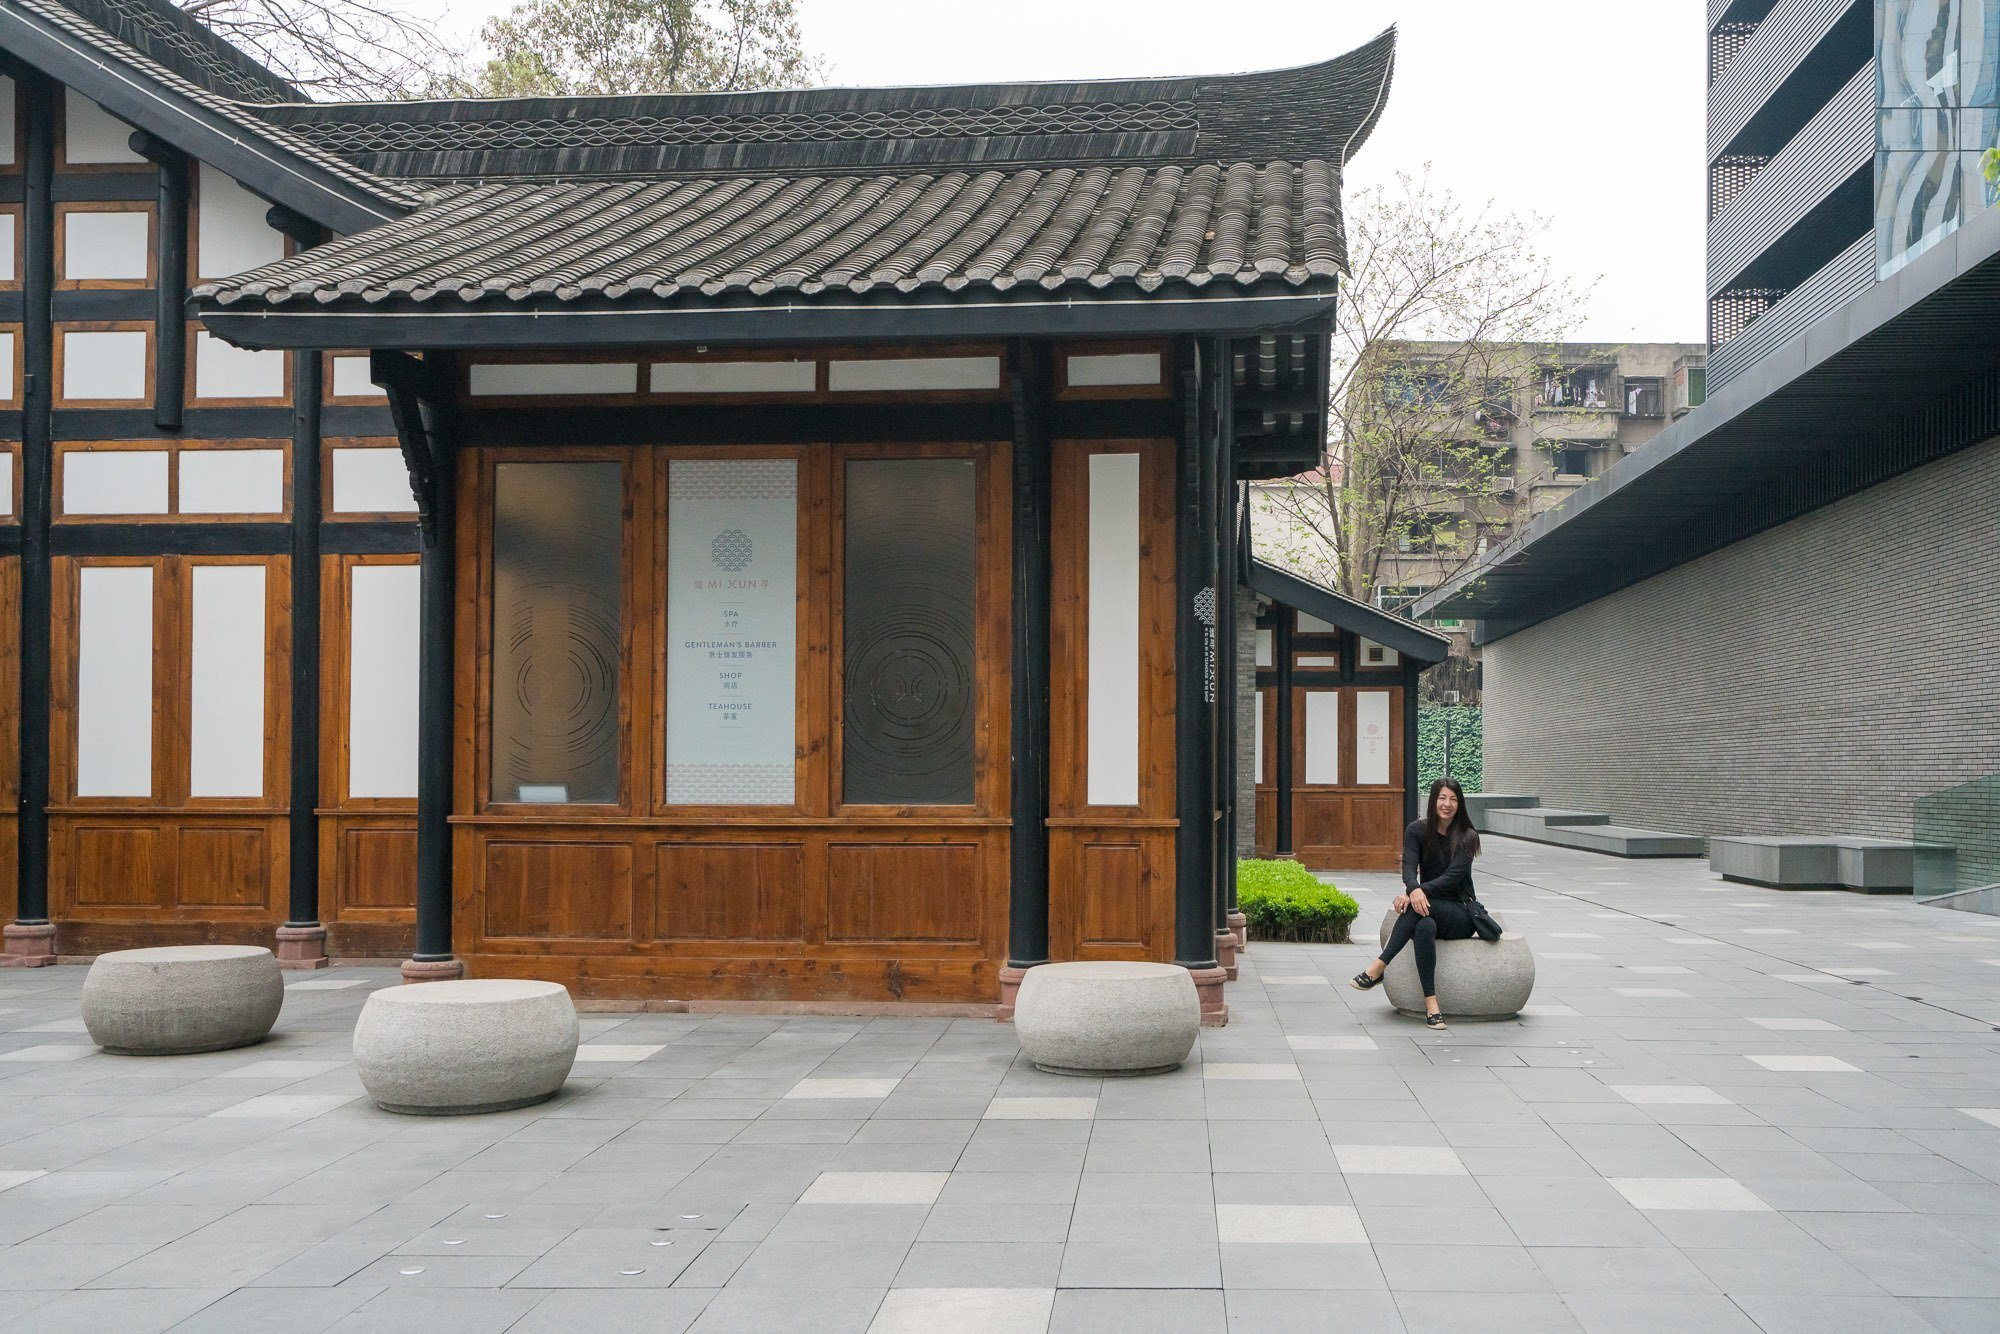 The Mi Xun spa at The Temple House in Chengdu.